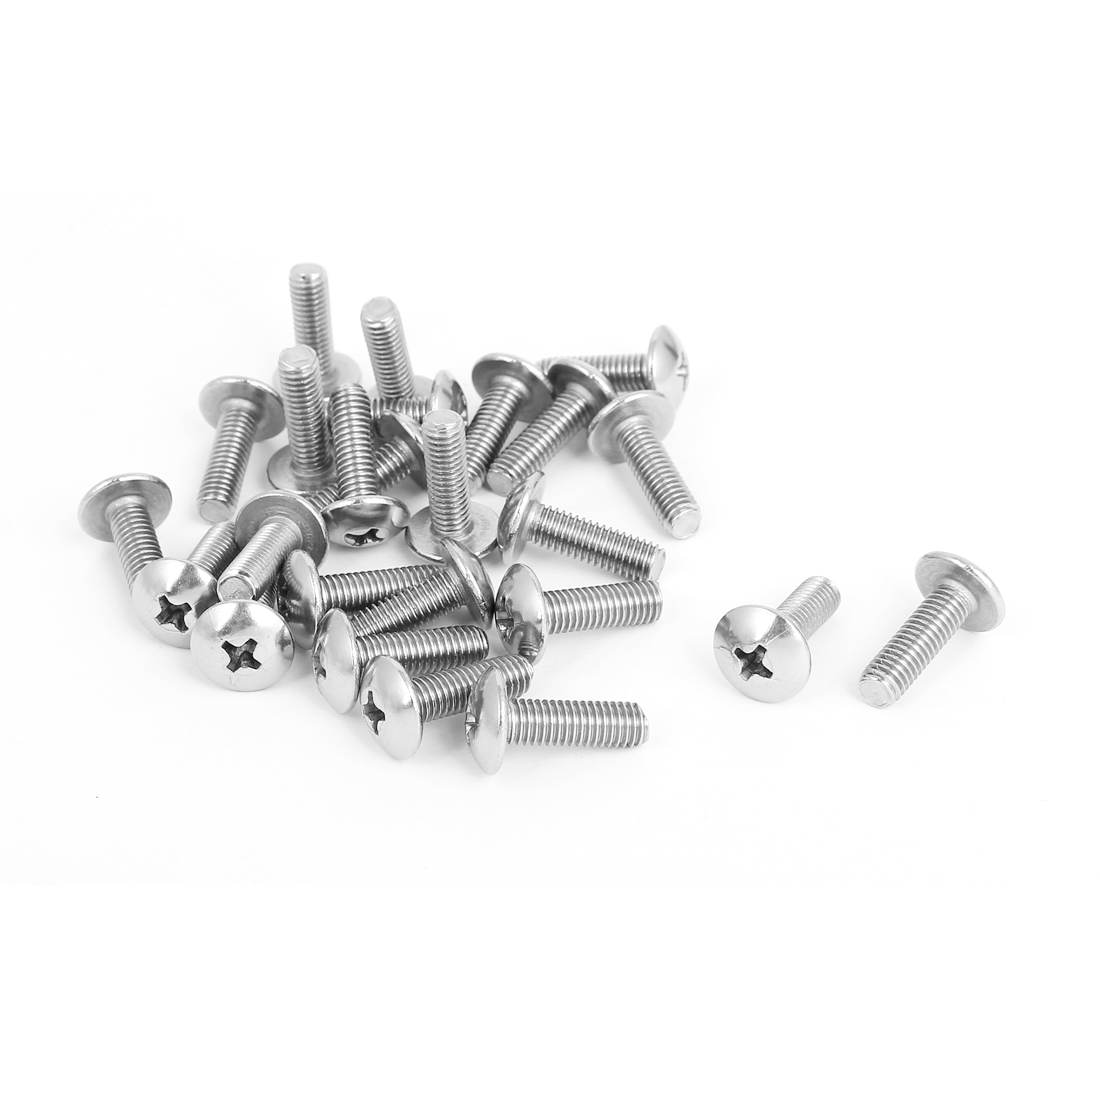 M5x16mm Stainless Steel Truss Phillips Head Machine Screws 25pcs